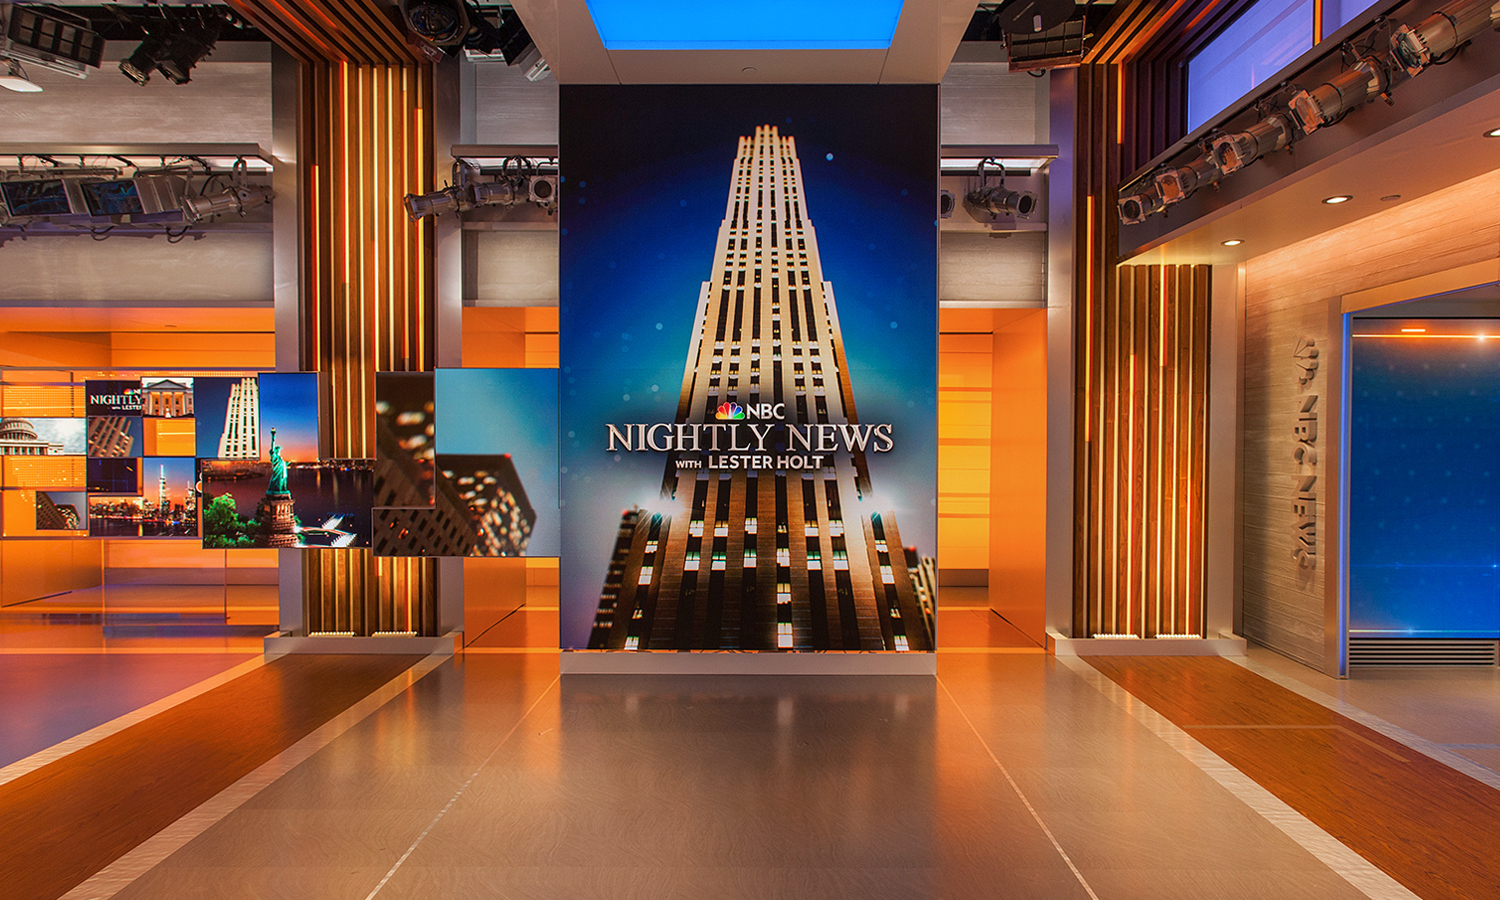 ncs_nbc-nightly-news-studio-3c_0005